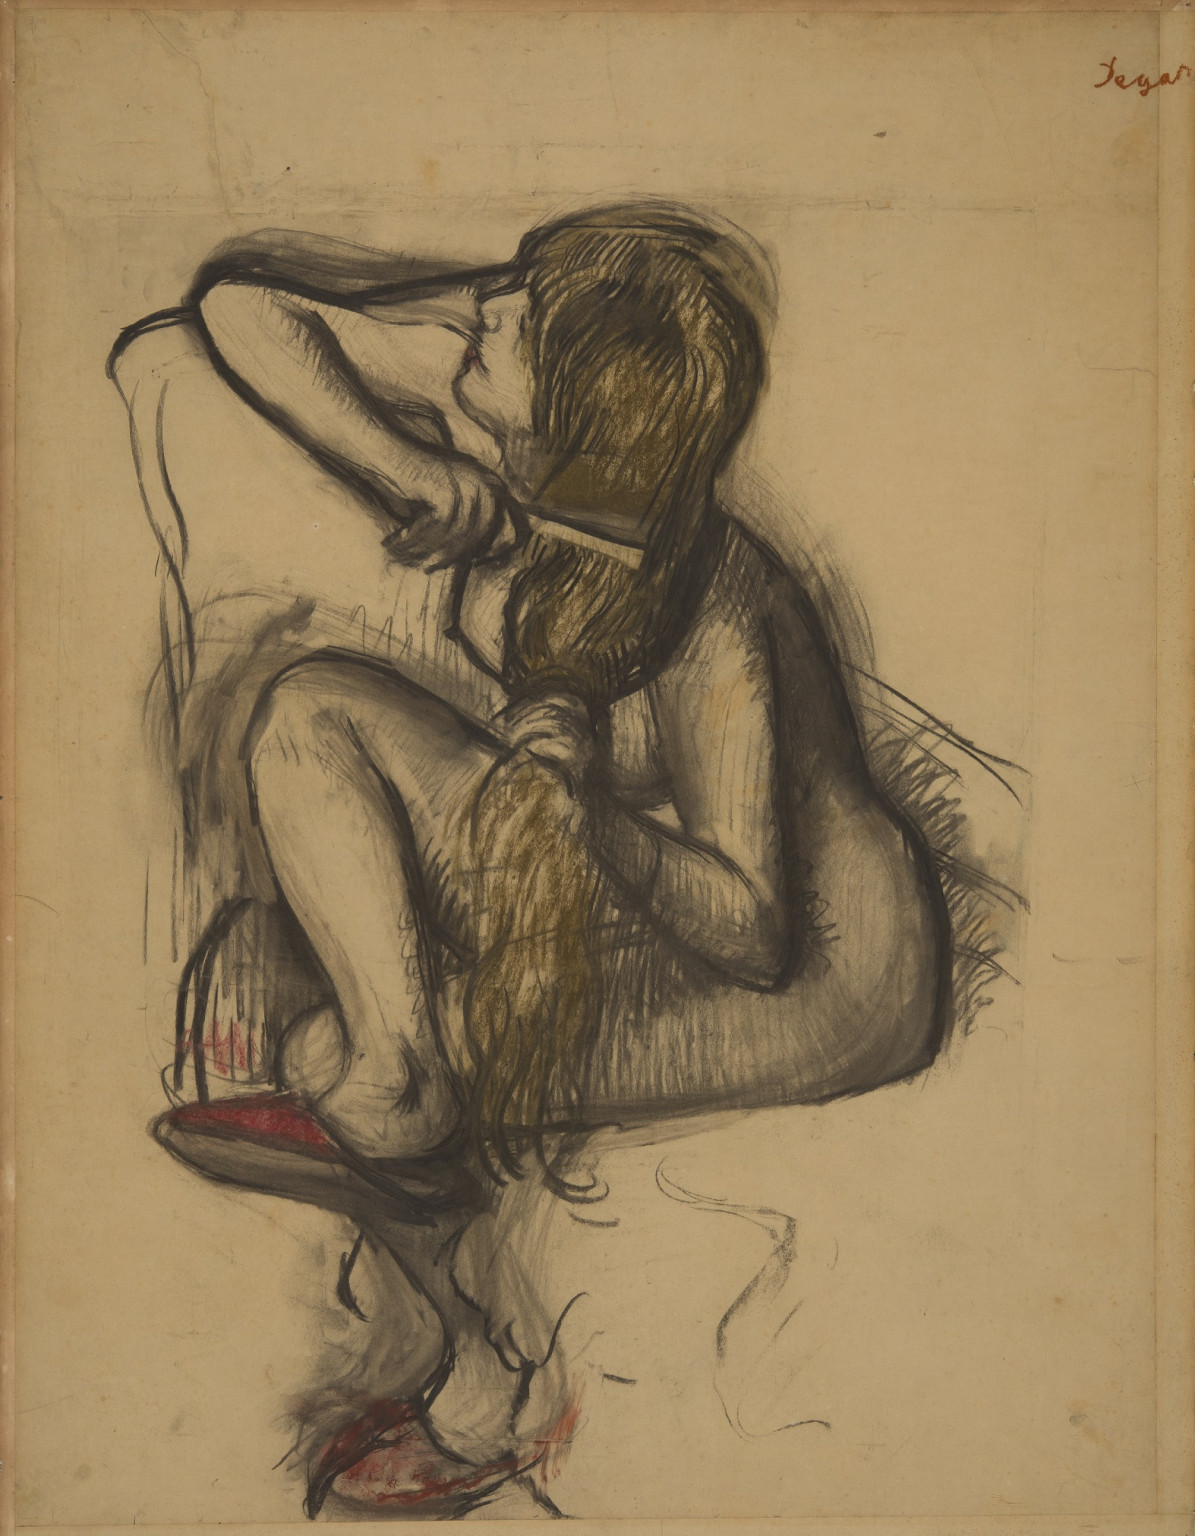 Edgar Degas, Femme se peignant, 1887-1890 c., Charcoal and red and brown chalk on tracing paper laid down on board, Pallant House Gallery, Chichester (Accepted by HM Government in Lieu of Inheritance Tax from the estate of Stephen Brod and allocated to Pa